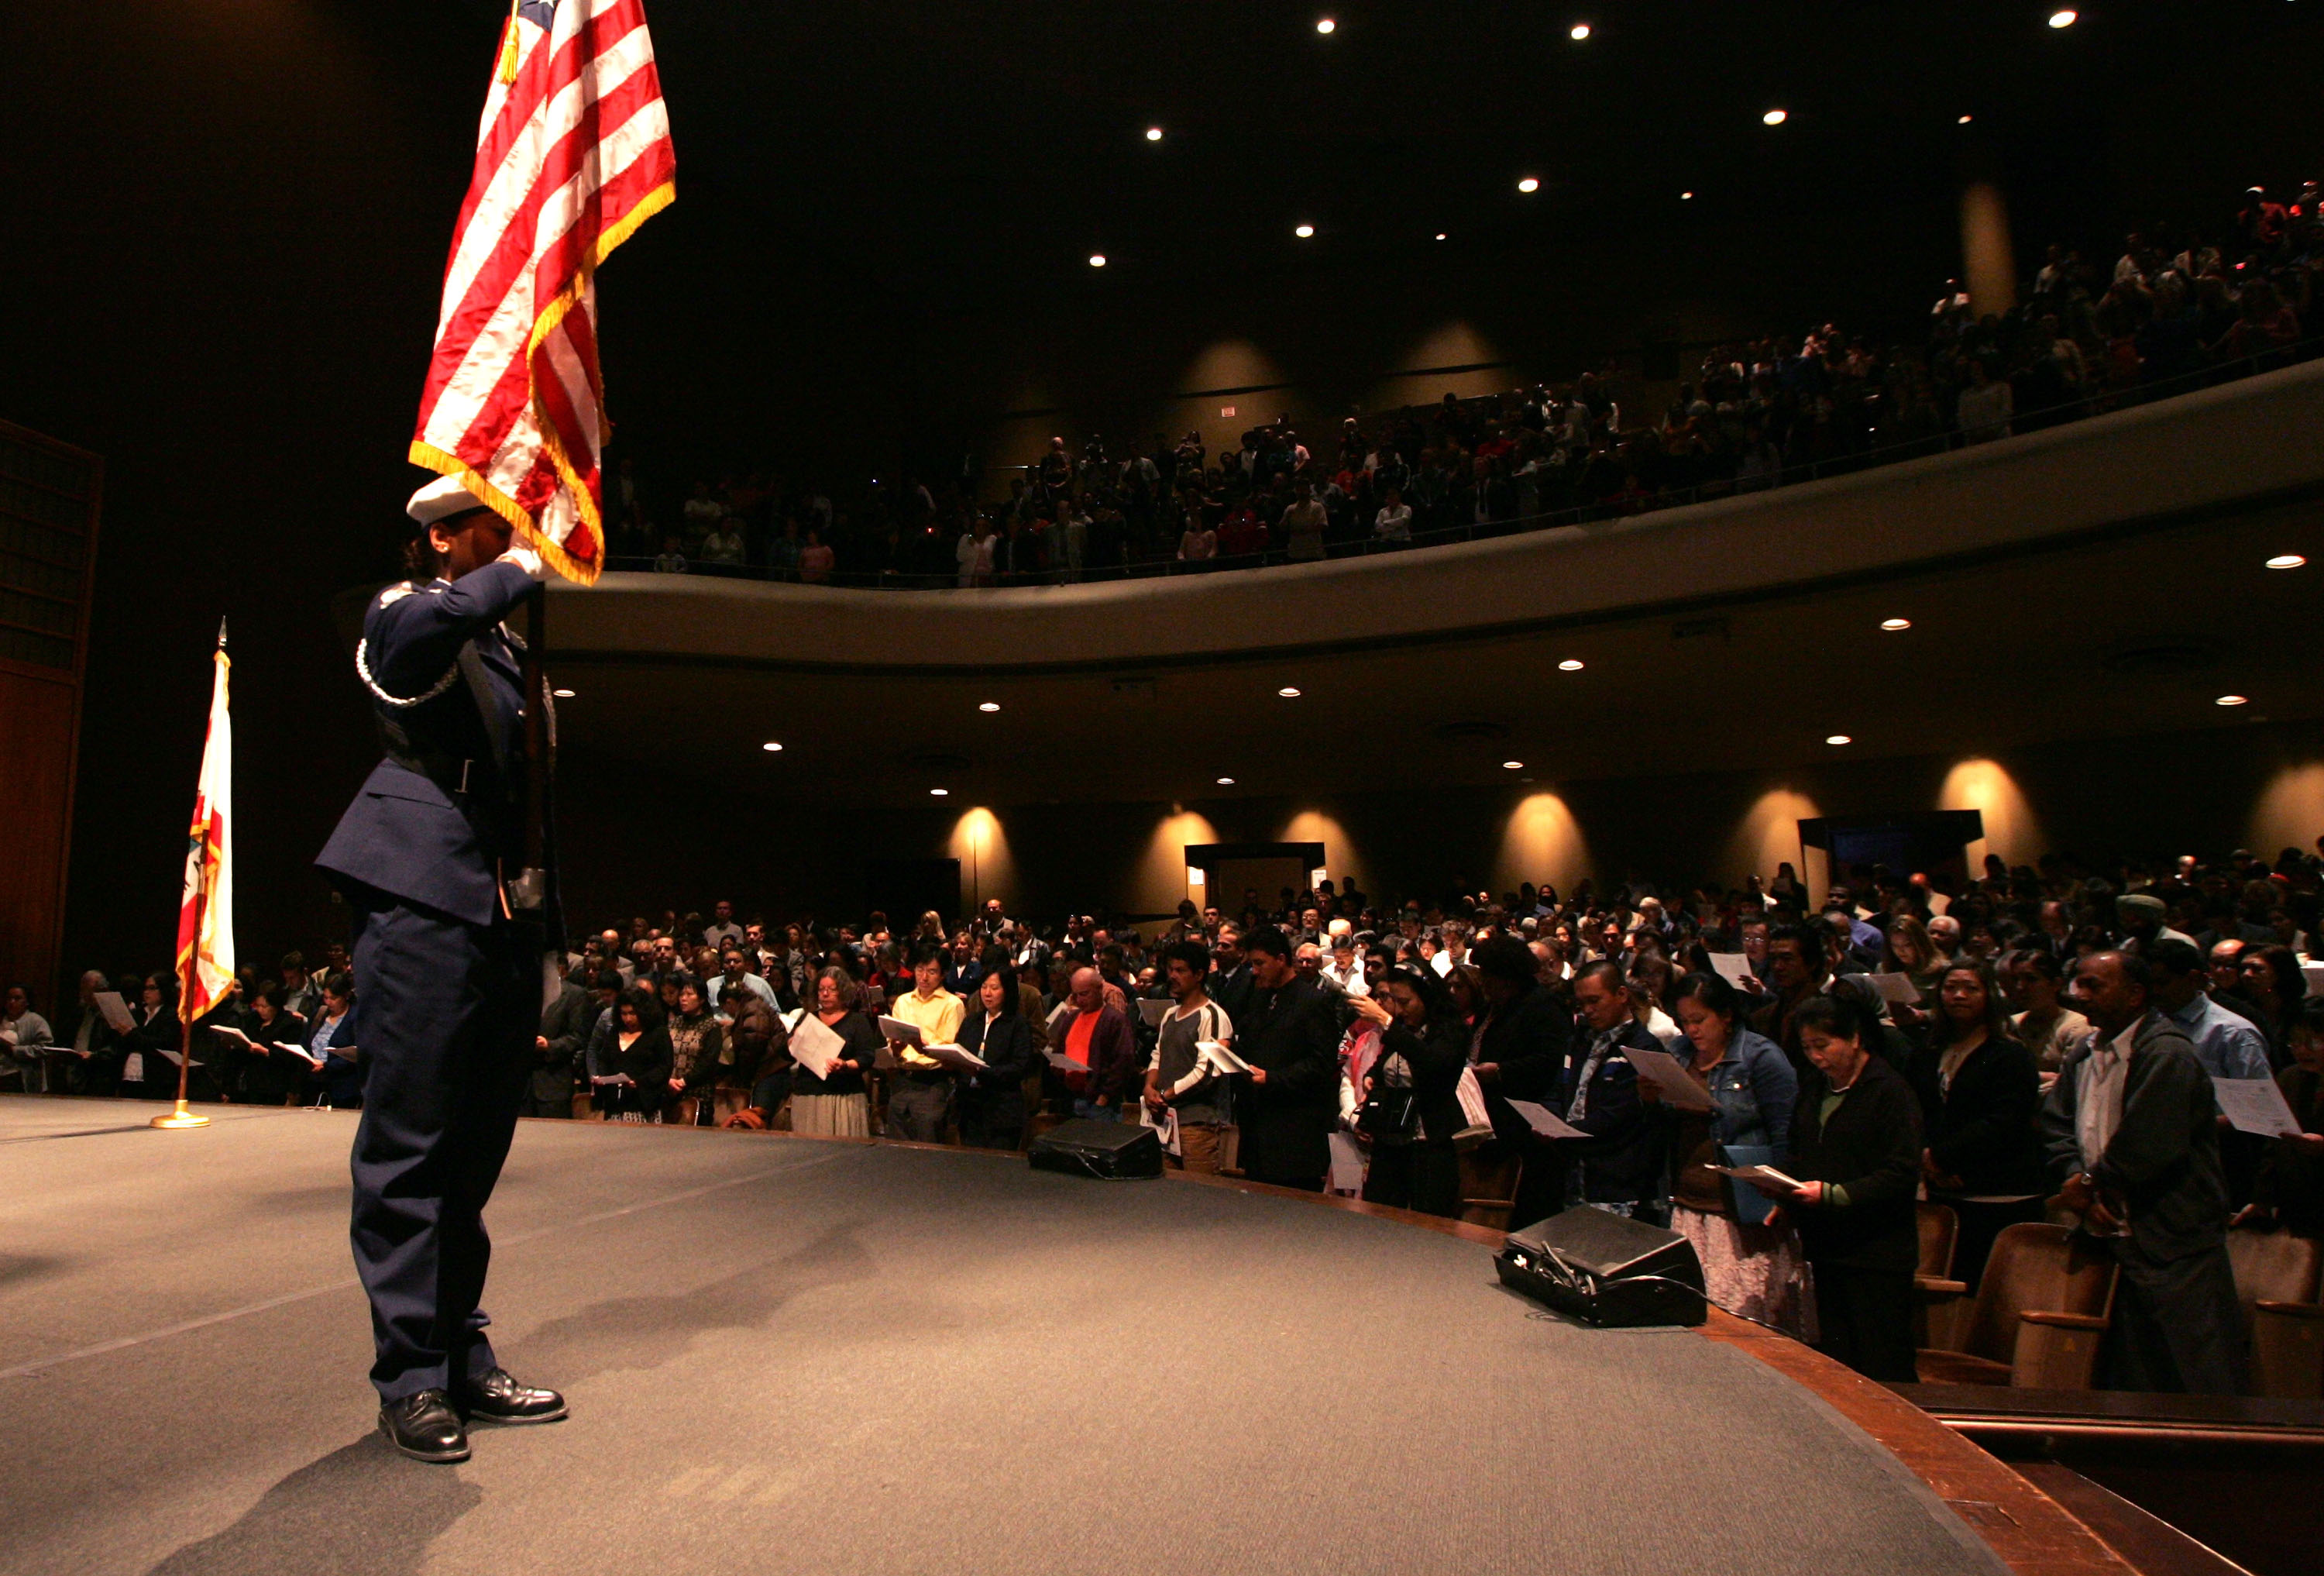 SAN FRANCISCO - MAY 22:  Immigrants are sworn in as U.S. citizens during a naturalization ceremony May 22, 2007 in San Francisco, California. Over 1,400 immigrants from 100 countries became U.S. citizens at the ceremony.  (Photo by Justin Sullivan/Getty Images)